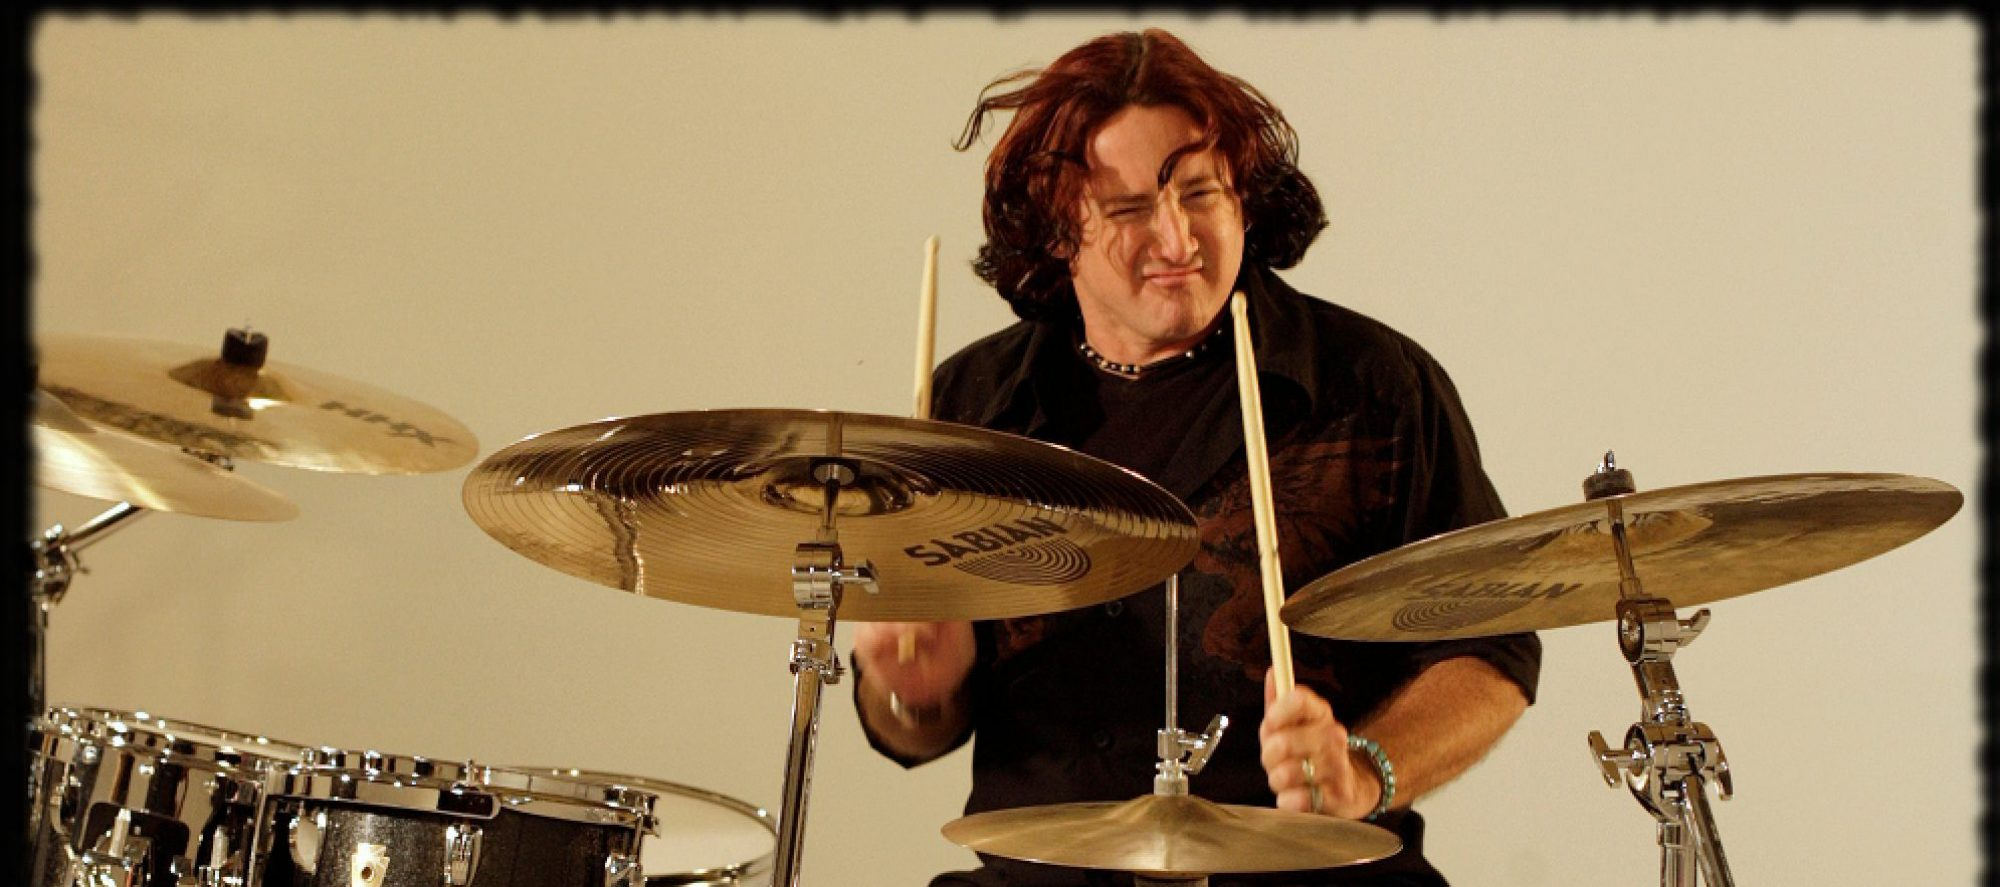 Sean O'Rourke | Drums | Production